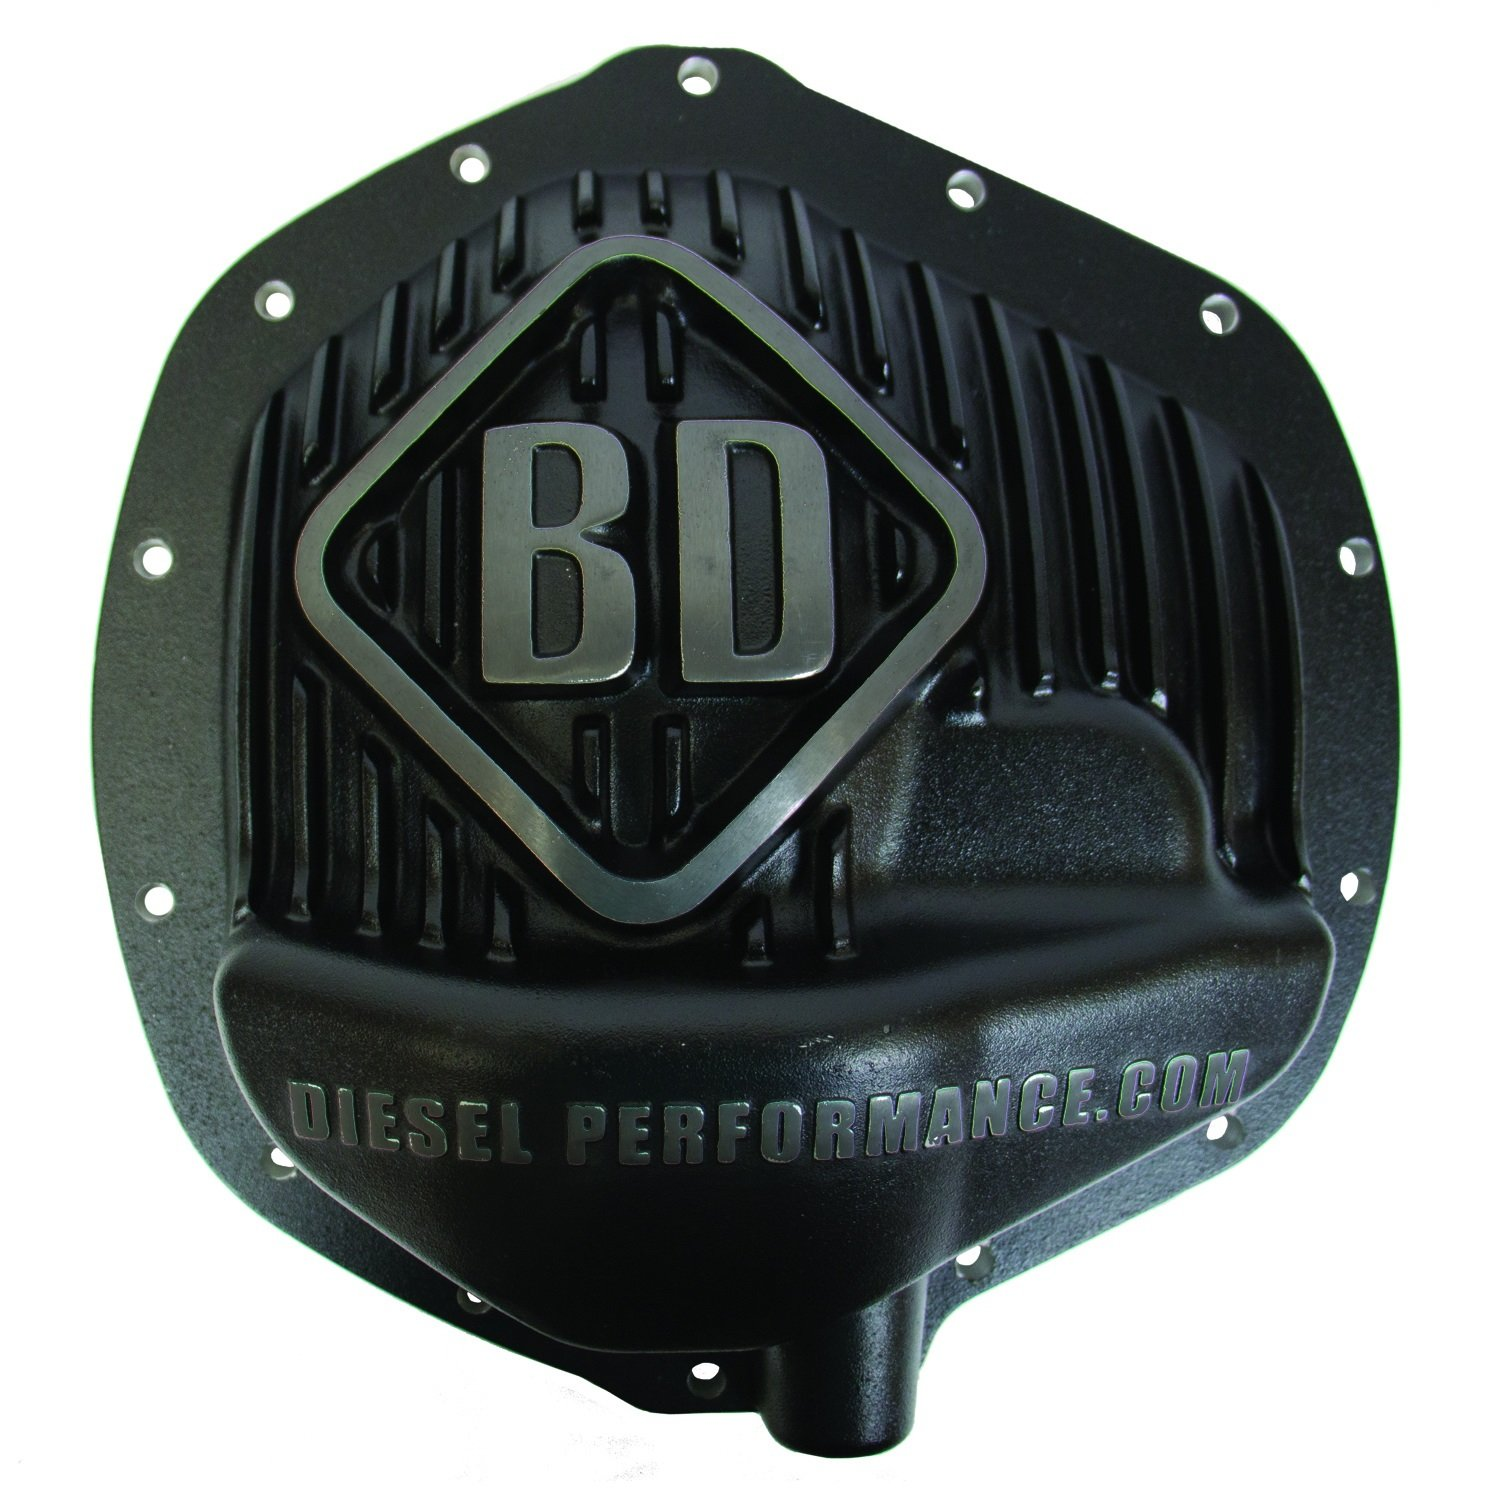 BD Diesel 1061825 Differential Cover by BD Diesel Performance (Image #1)